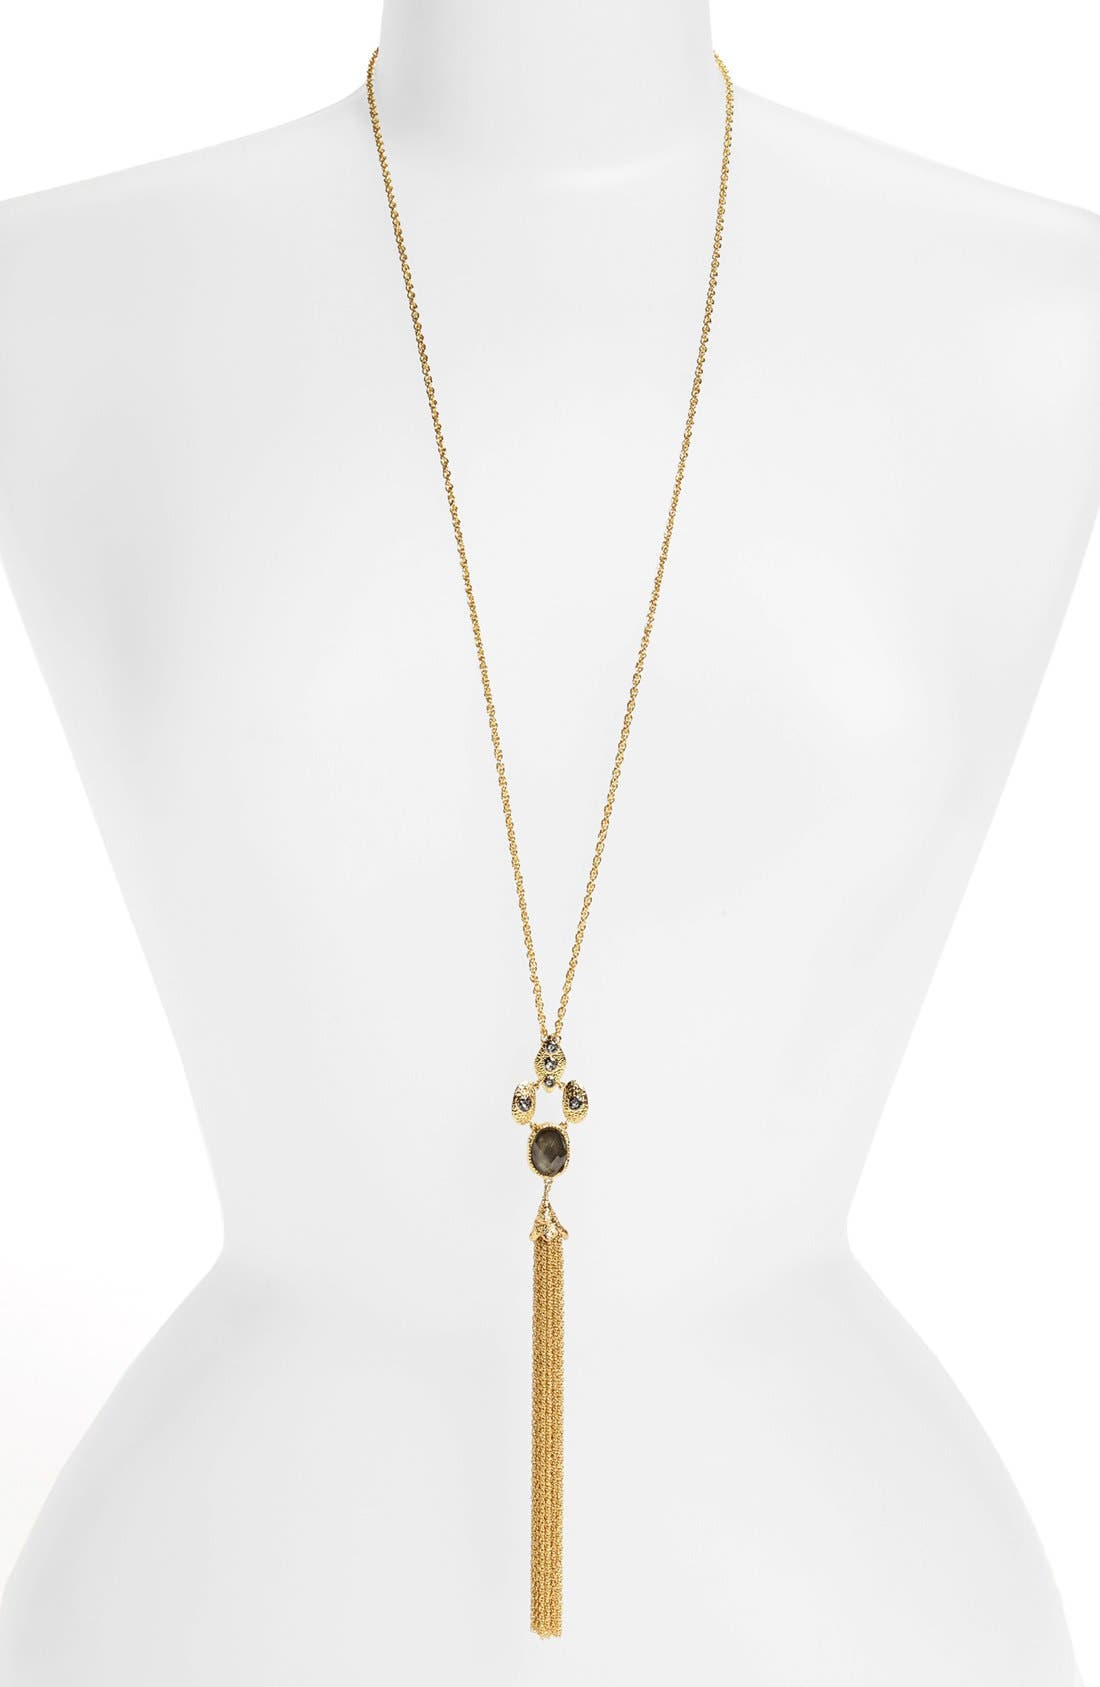 Alternate Image 1 Selected - Alexis Bittar 'Elements' Long Tassel Pendant Necklace